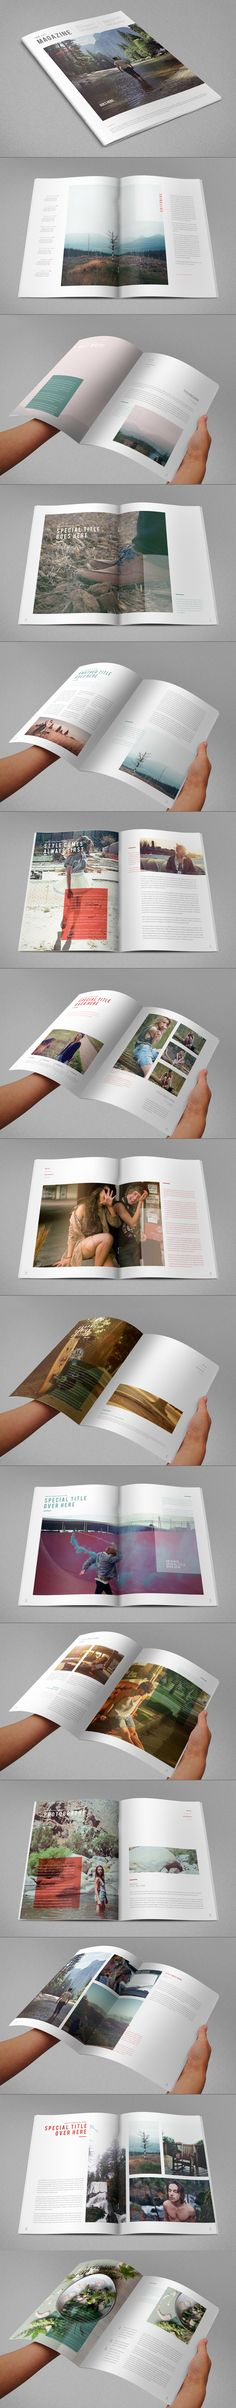 Magazine/Viewbook Layout - Love the emphasis on photos, minimalist text